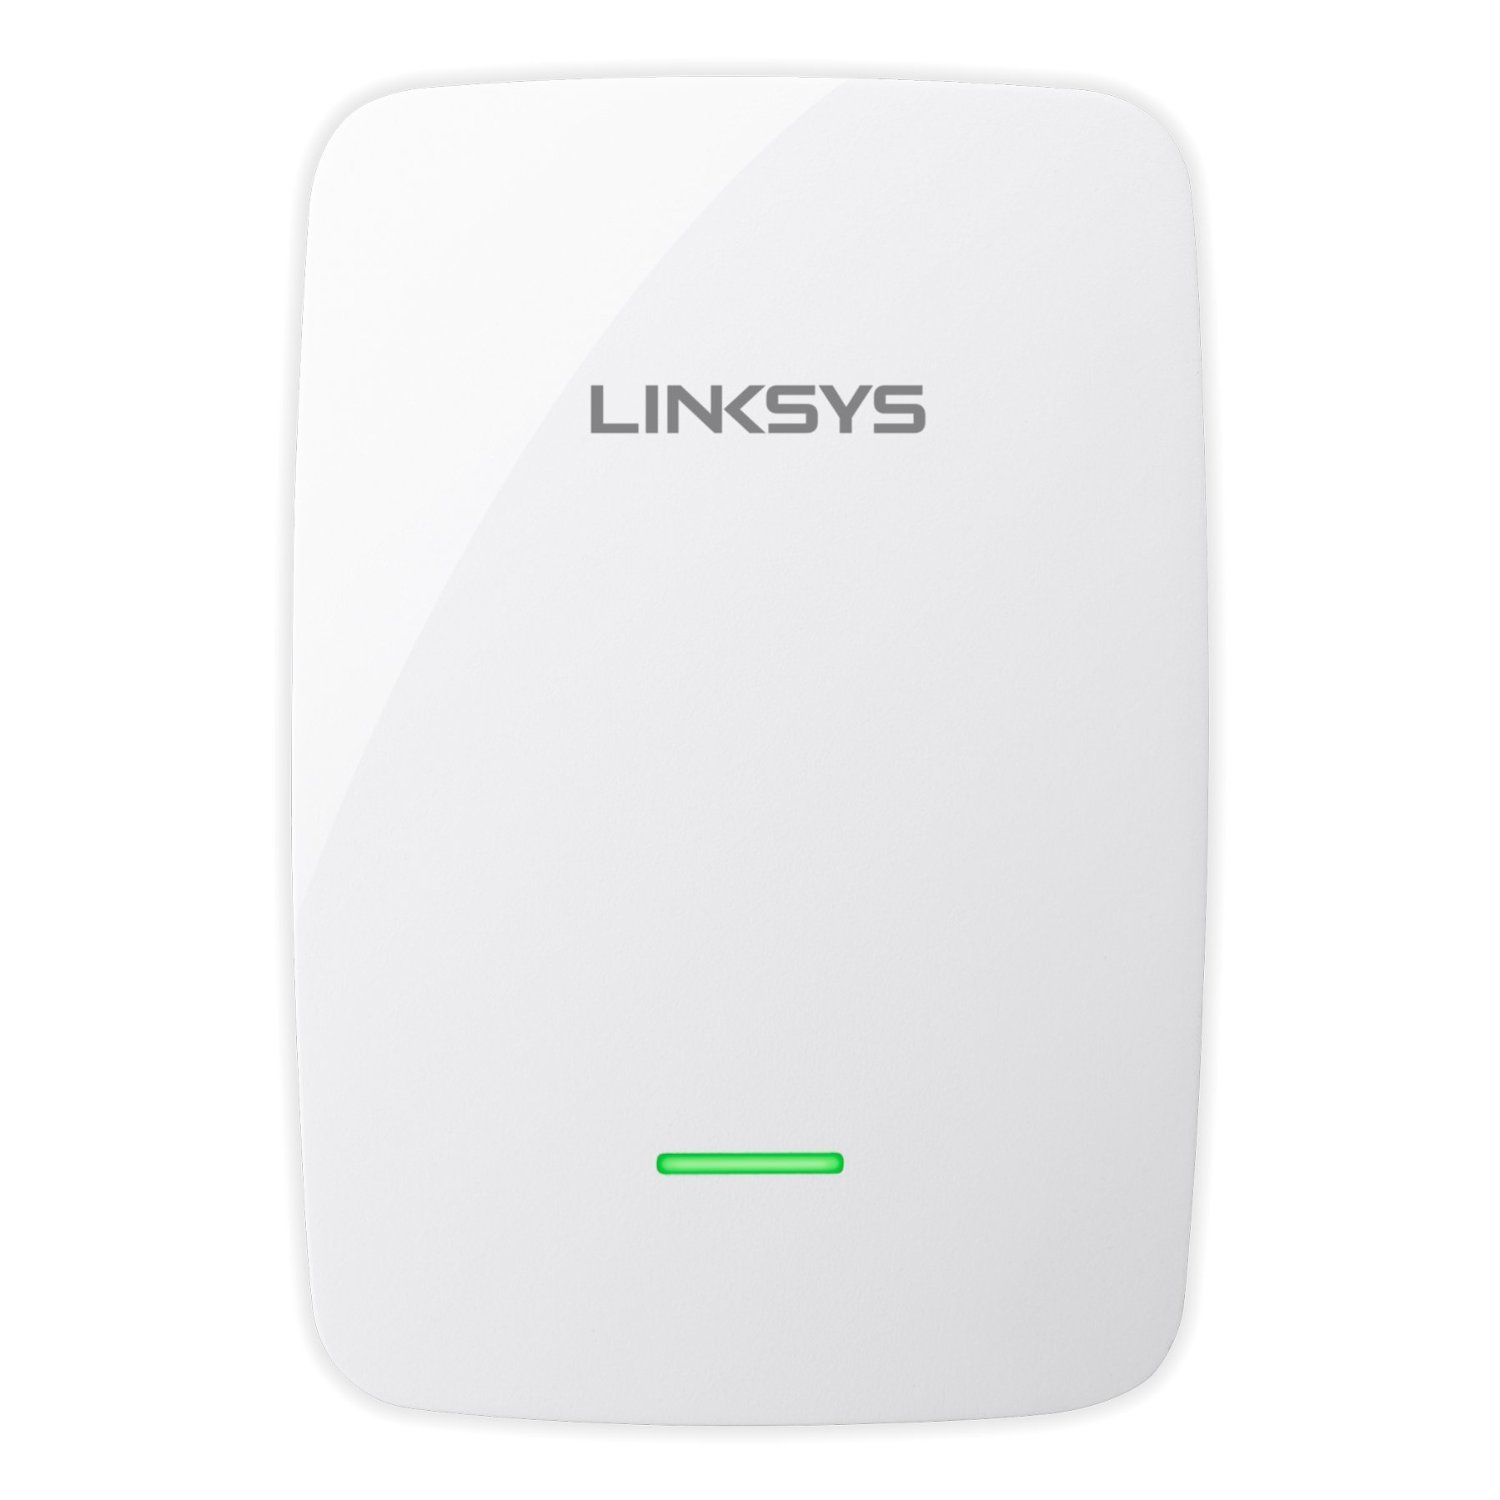 Linksys N600 Pro Dual-Band WiFi Range Extender | Pins from